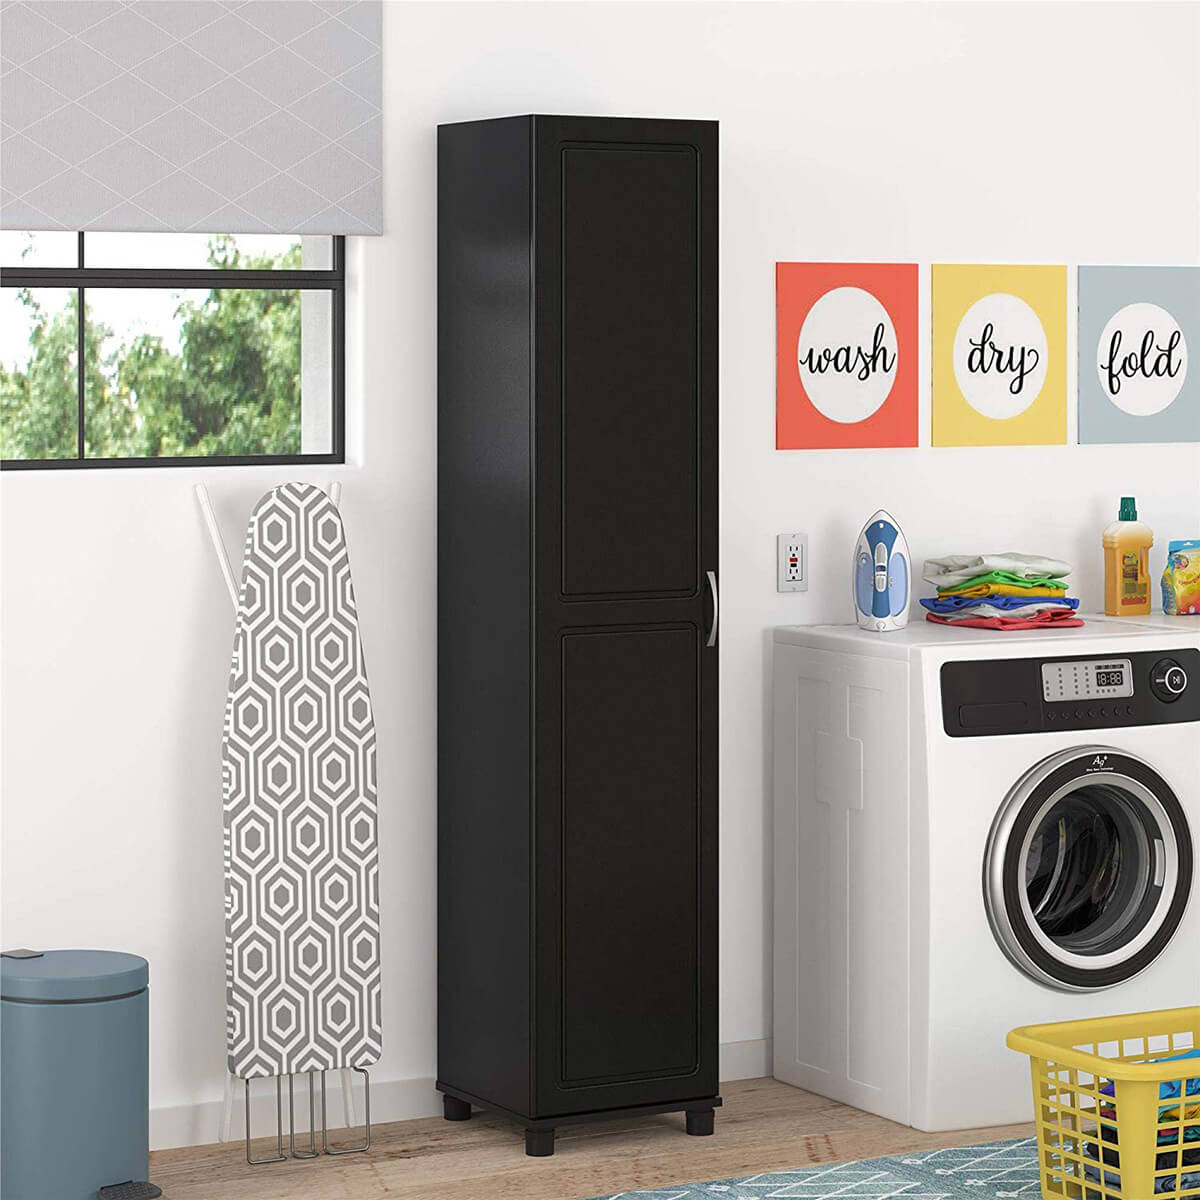 30 Of The Most Stylish And Best Laundry Room Cabinets To Buy In 2020